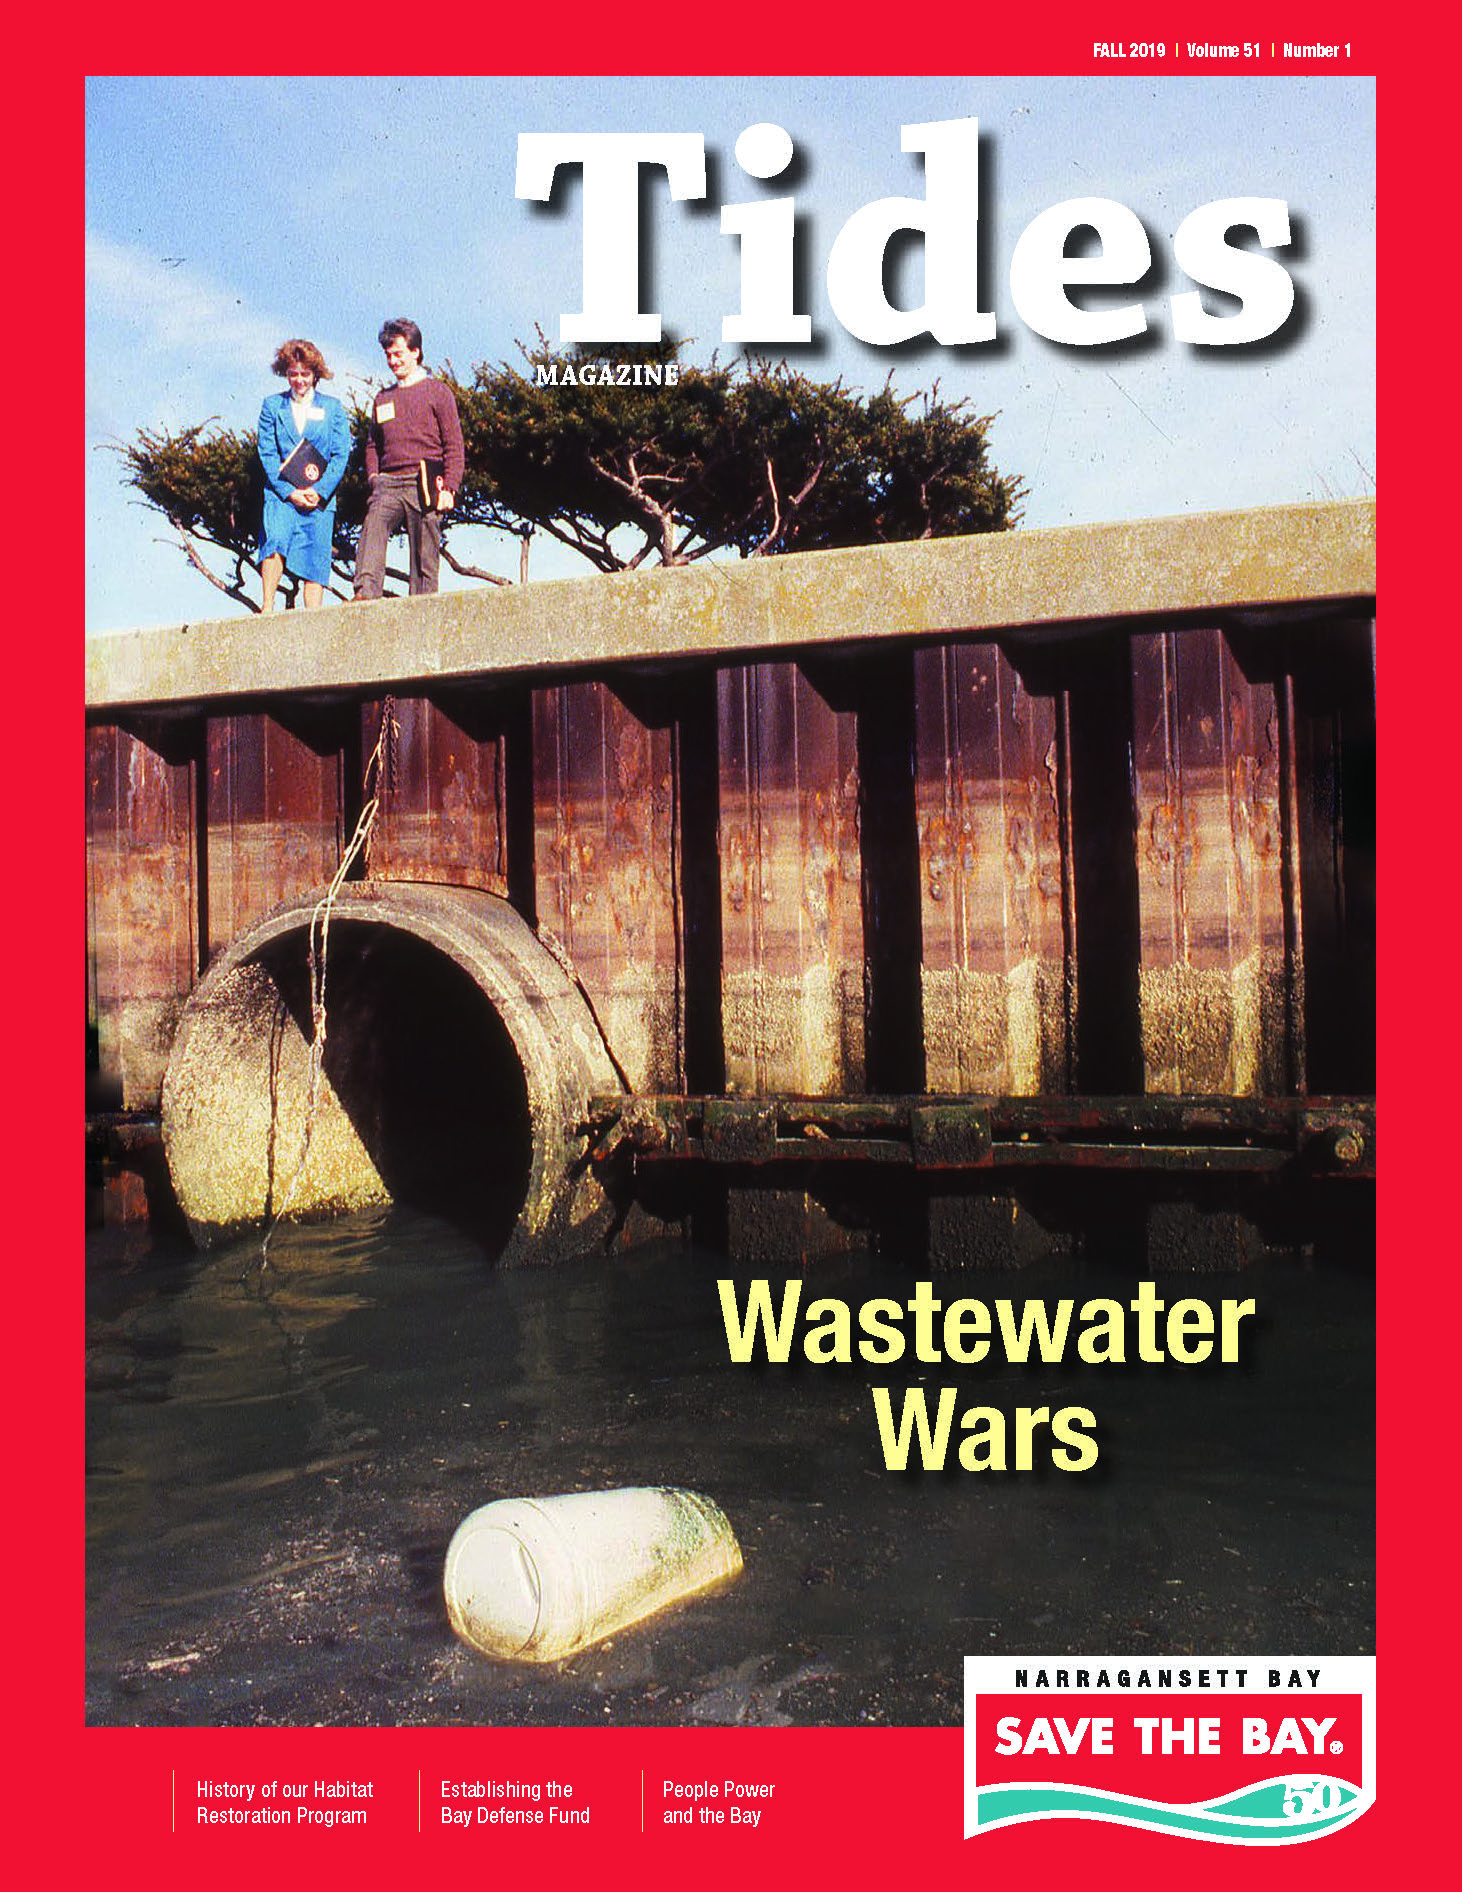 The cover of Save The Bay's Fall 2019 issue of Tides